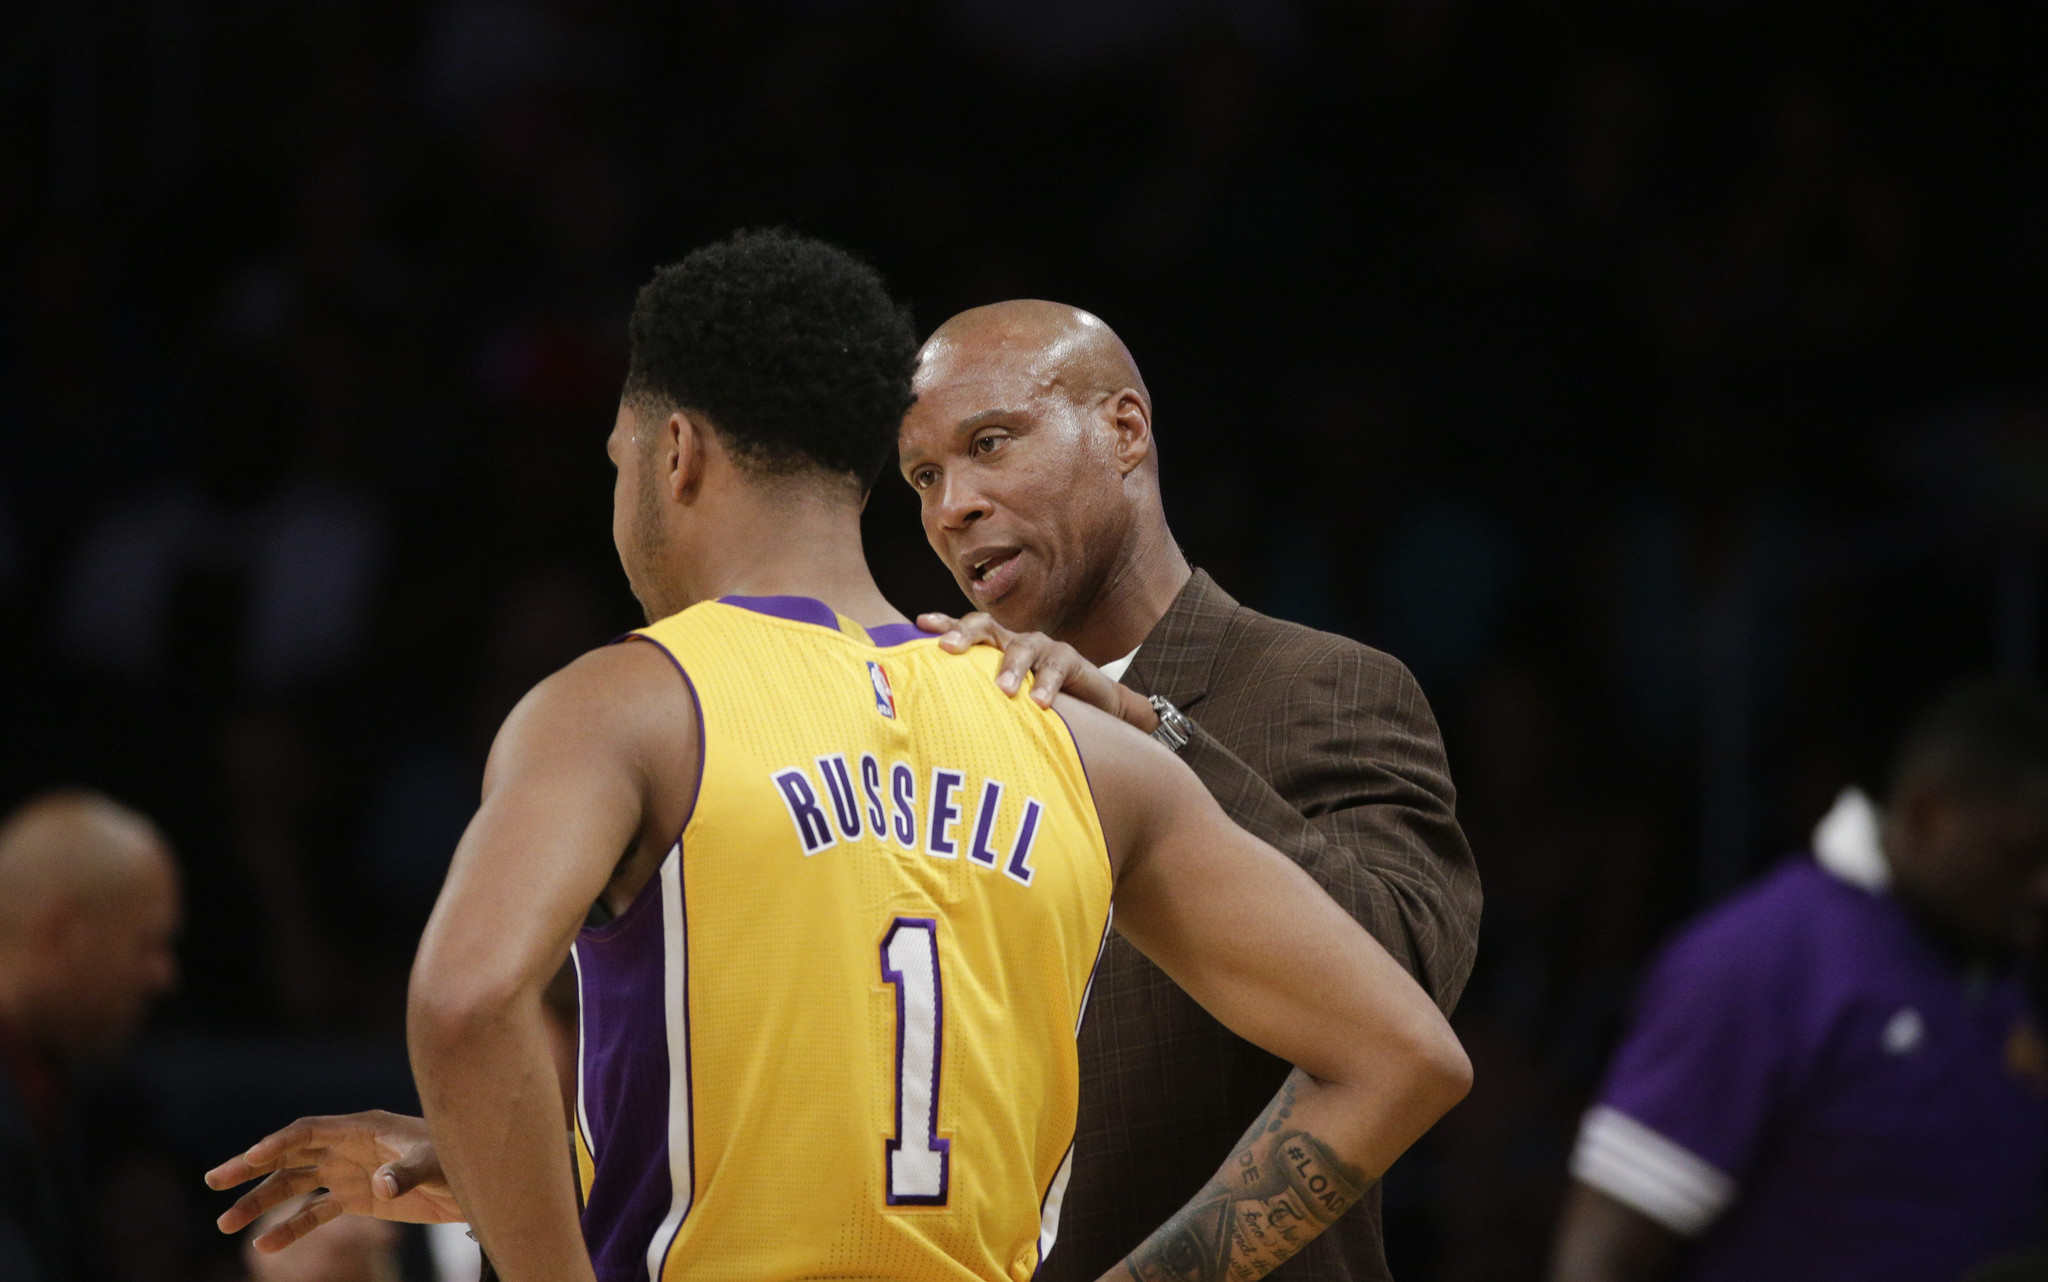 La-sp-ln-lakers-d-angelo-russell-20160206